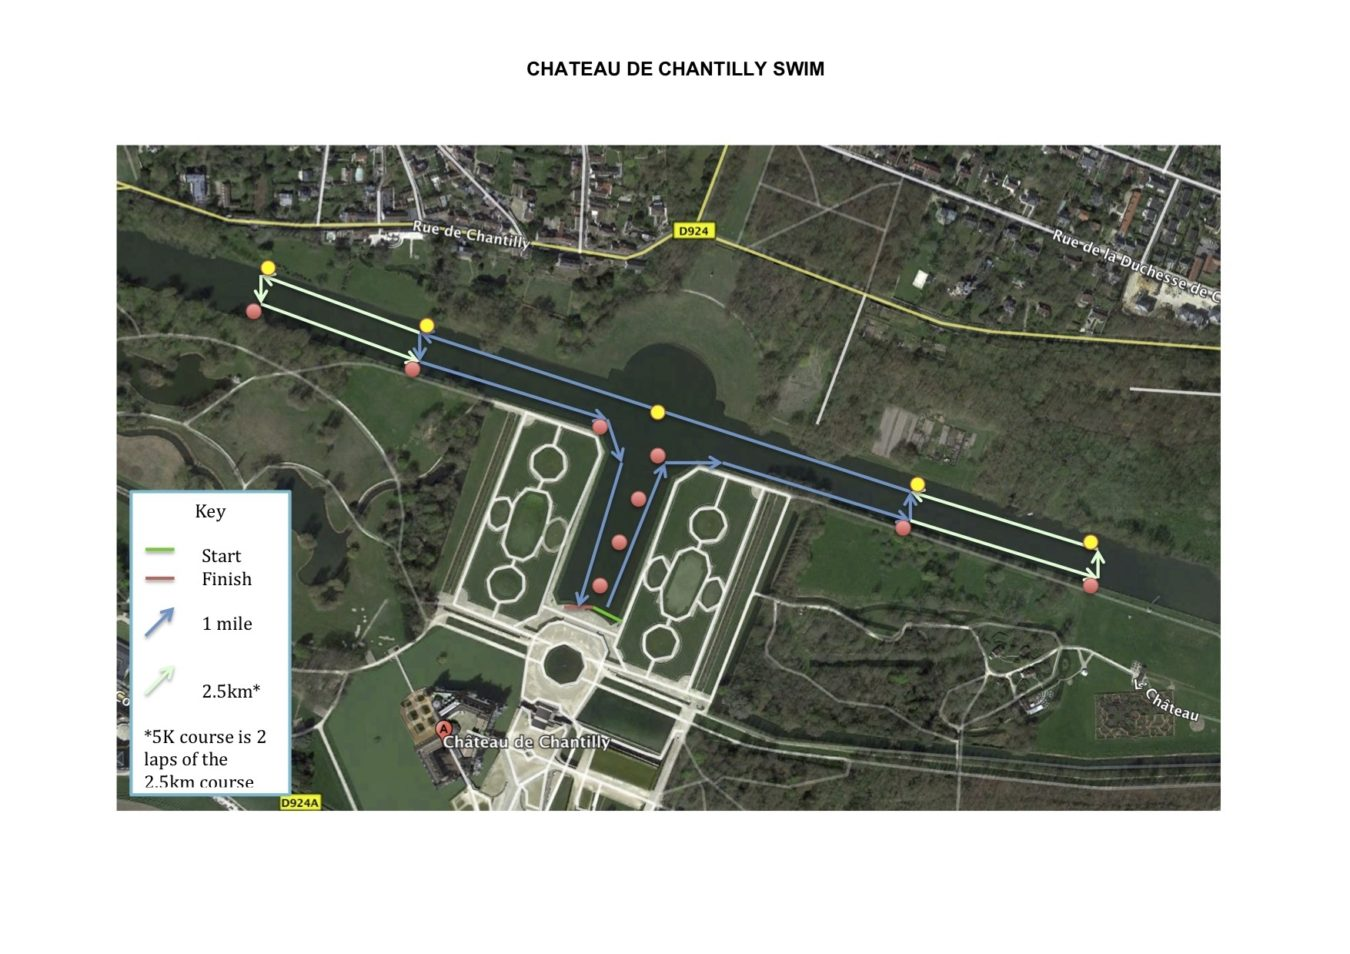 Chateau De Chantilly Swim